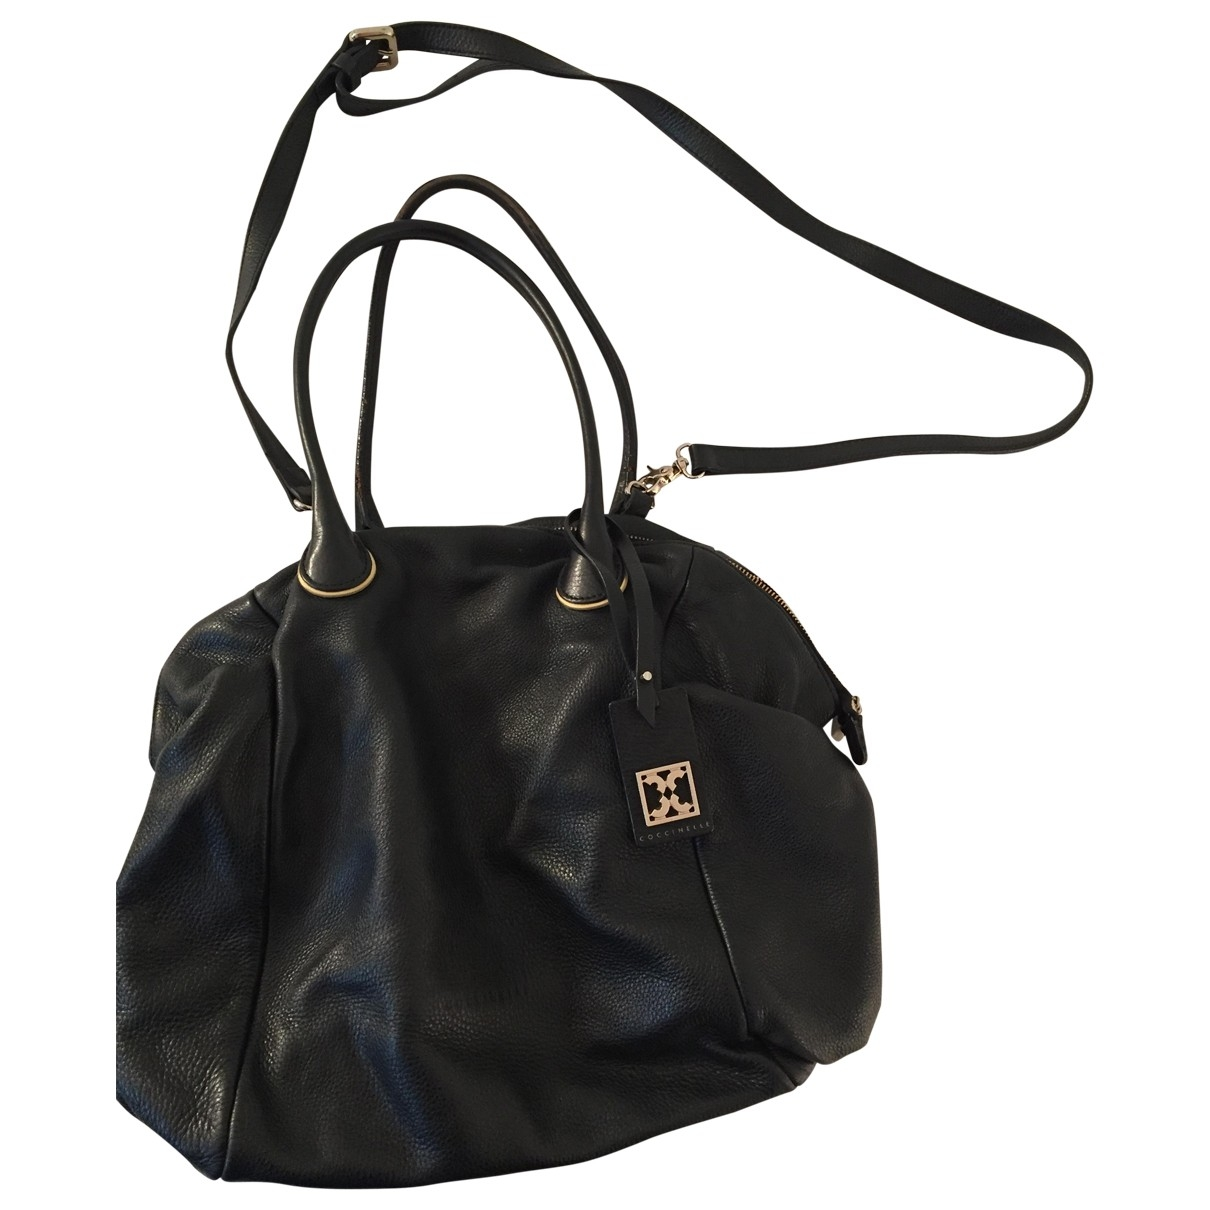 Coccinelle \N Black Leather handbag for Women \N